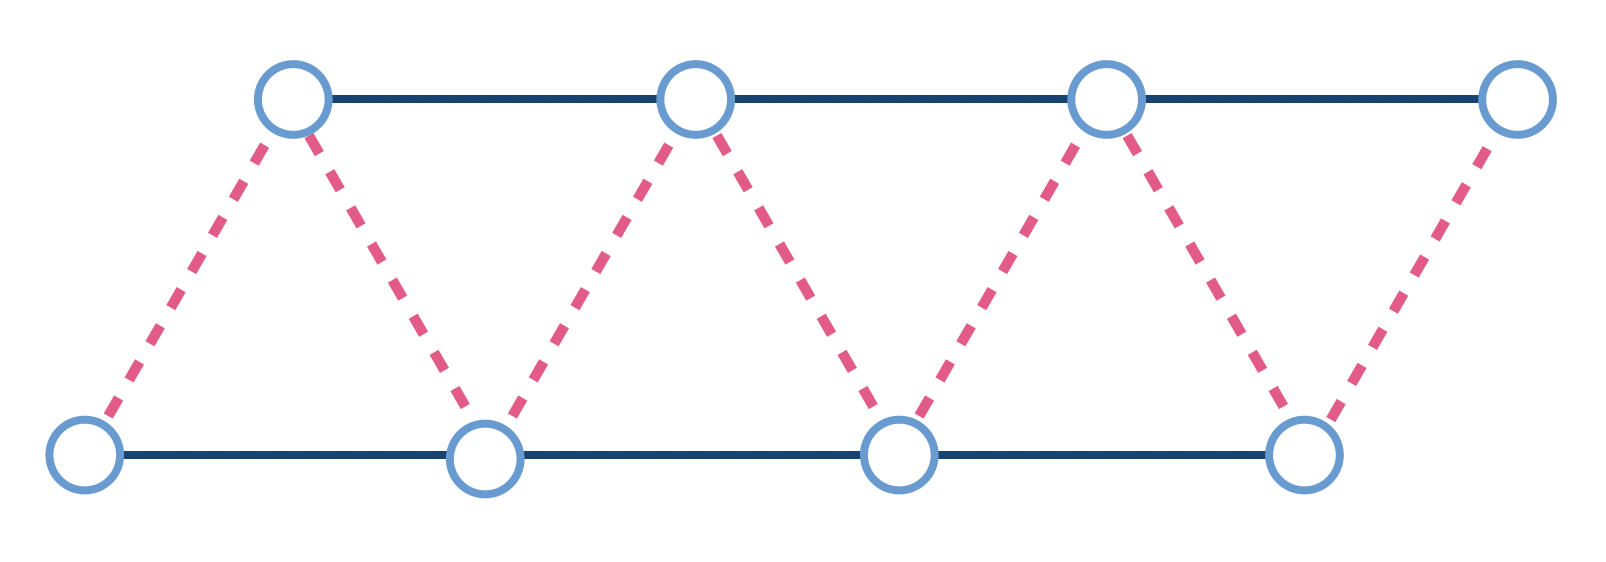 Triangular lattice. Circles represent qubits, and the solid dark-blue and the dashed red lines represent antiferromagnetic and ferromagnetic couplings, respectively.